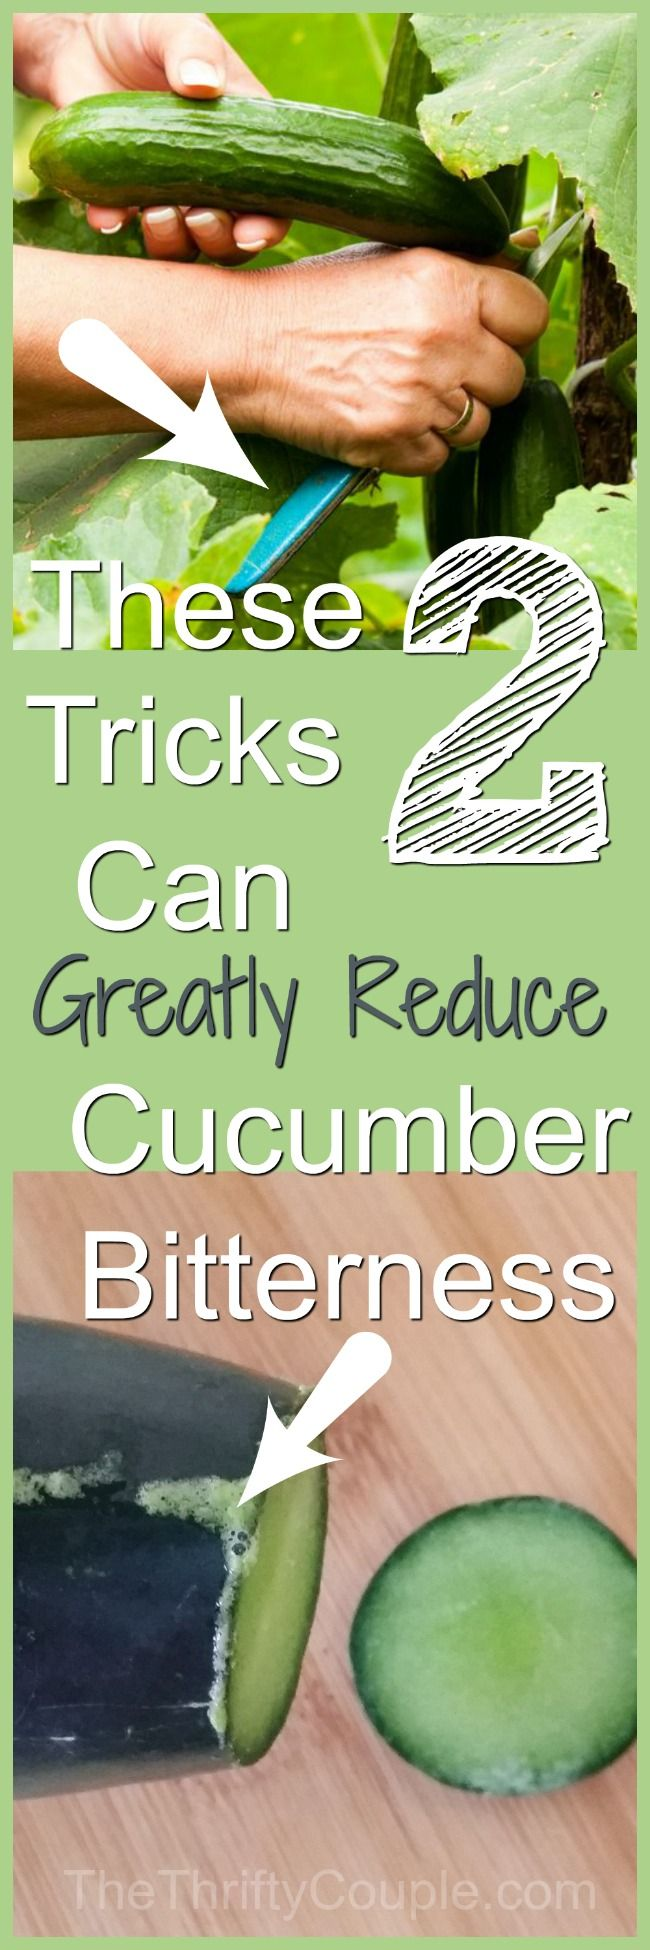 These are great tricks that WORK to reduce the bitterness in cucumbers! If you grow your own or buy them from the grocery store,you have got to do these! Rubbing the cucumber end to the whole veggie is the best, but the other tricks are just as great!